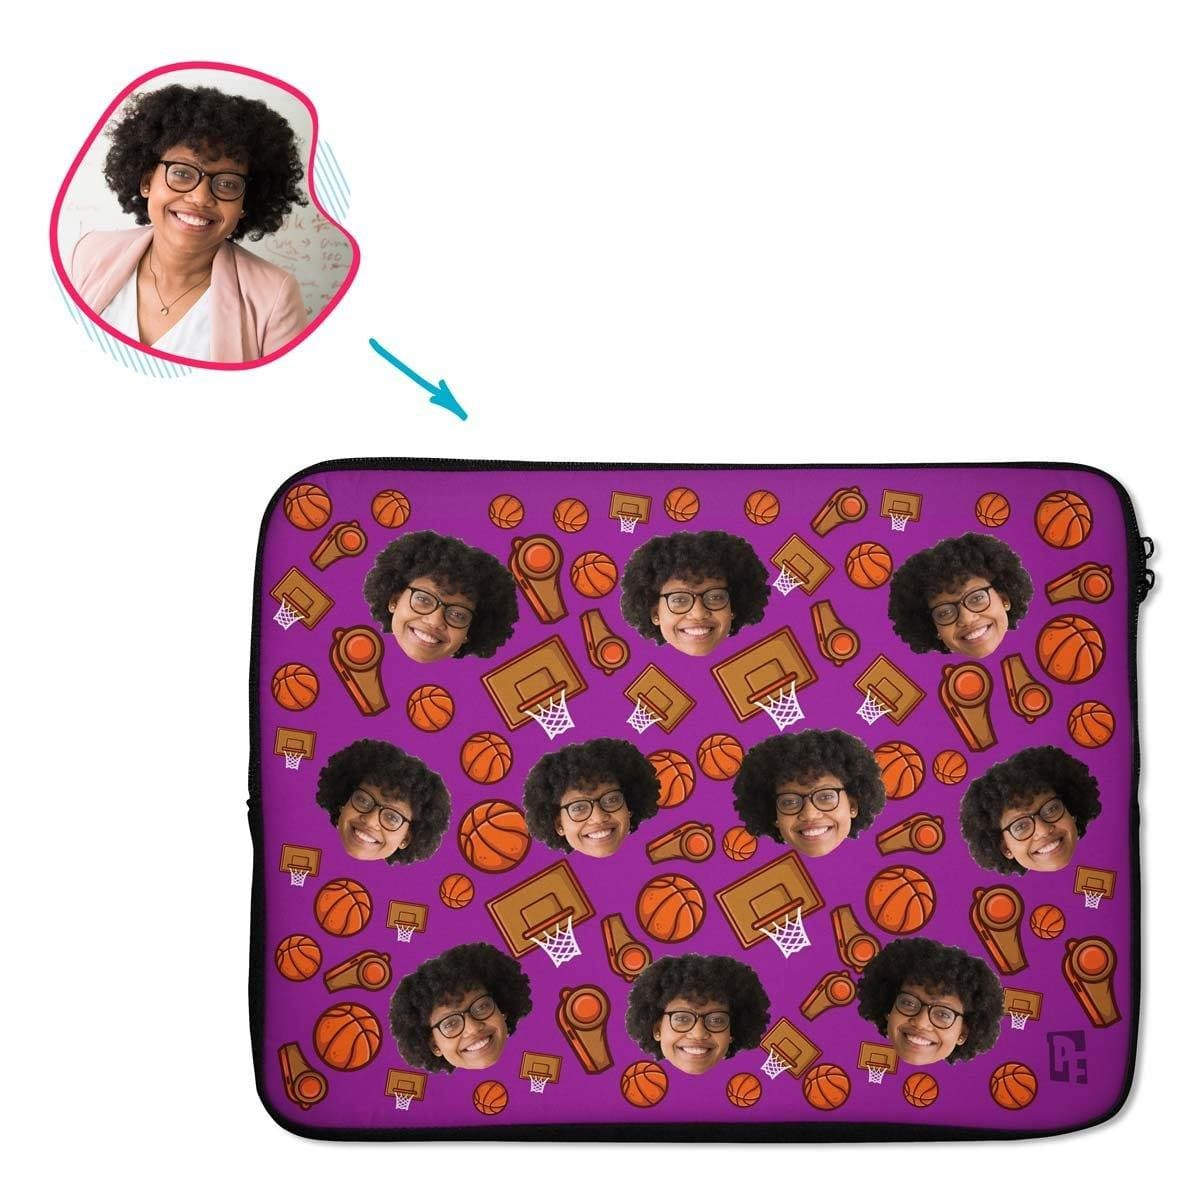 purple Basketball laptop sleeve personalized with photo of face printed on them